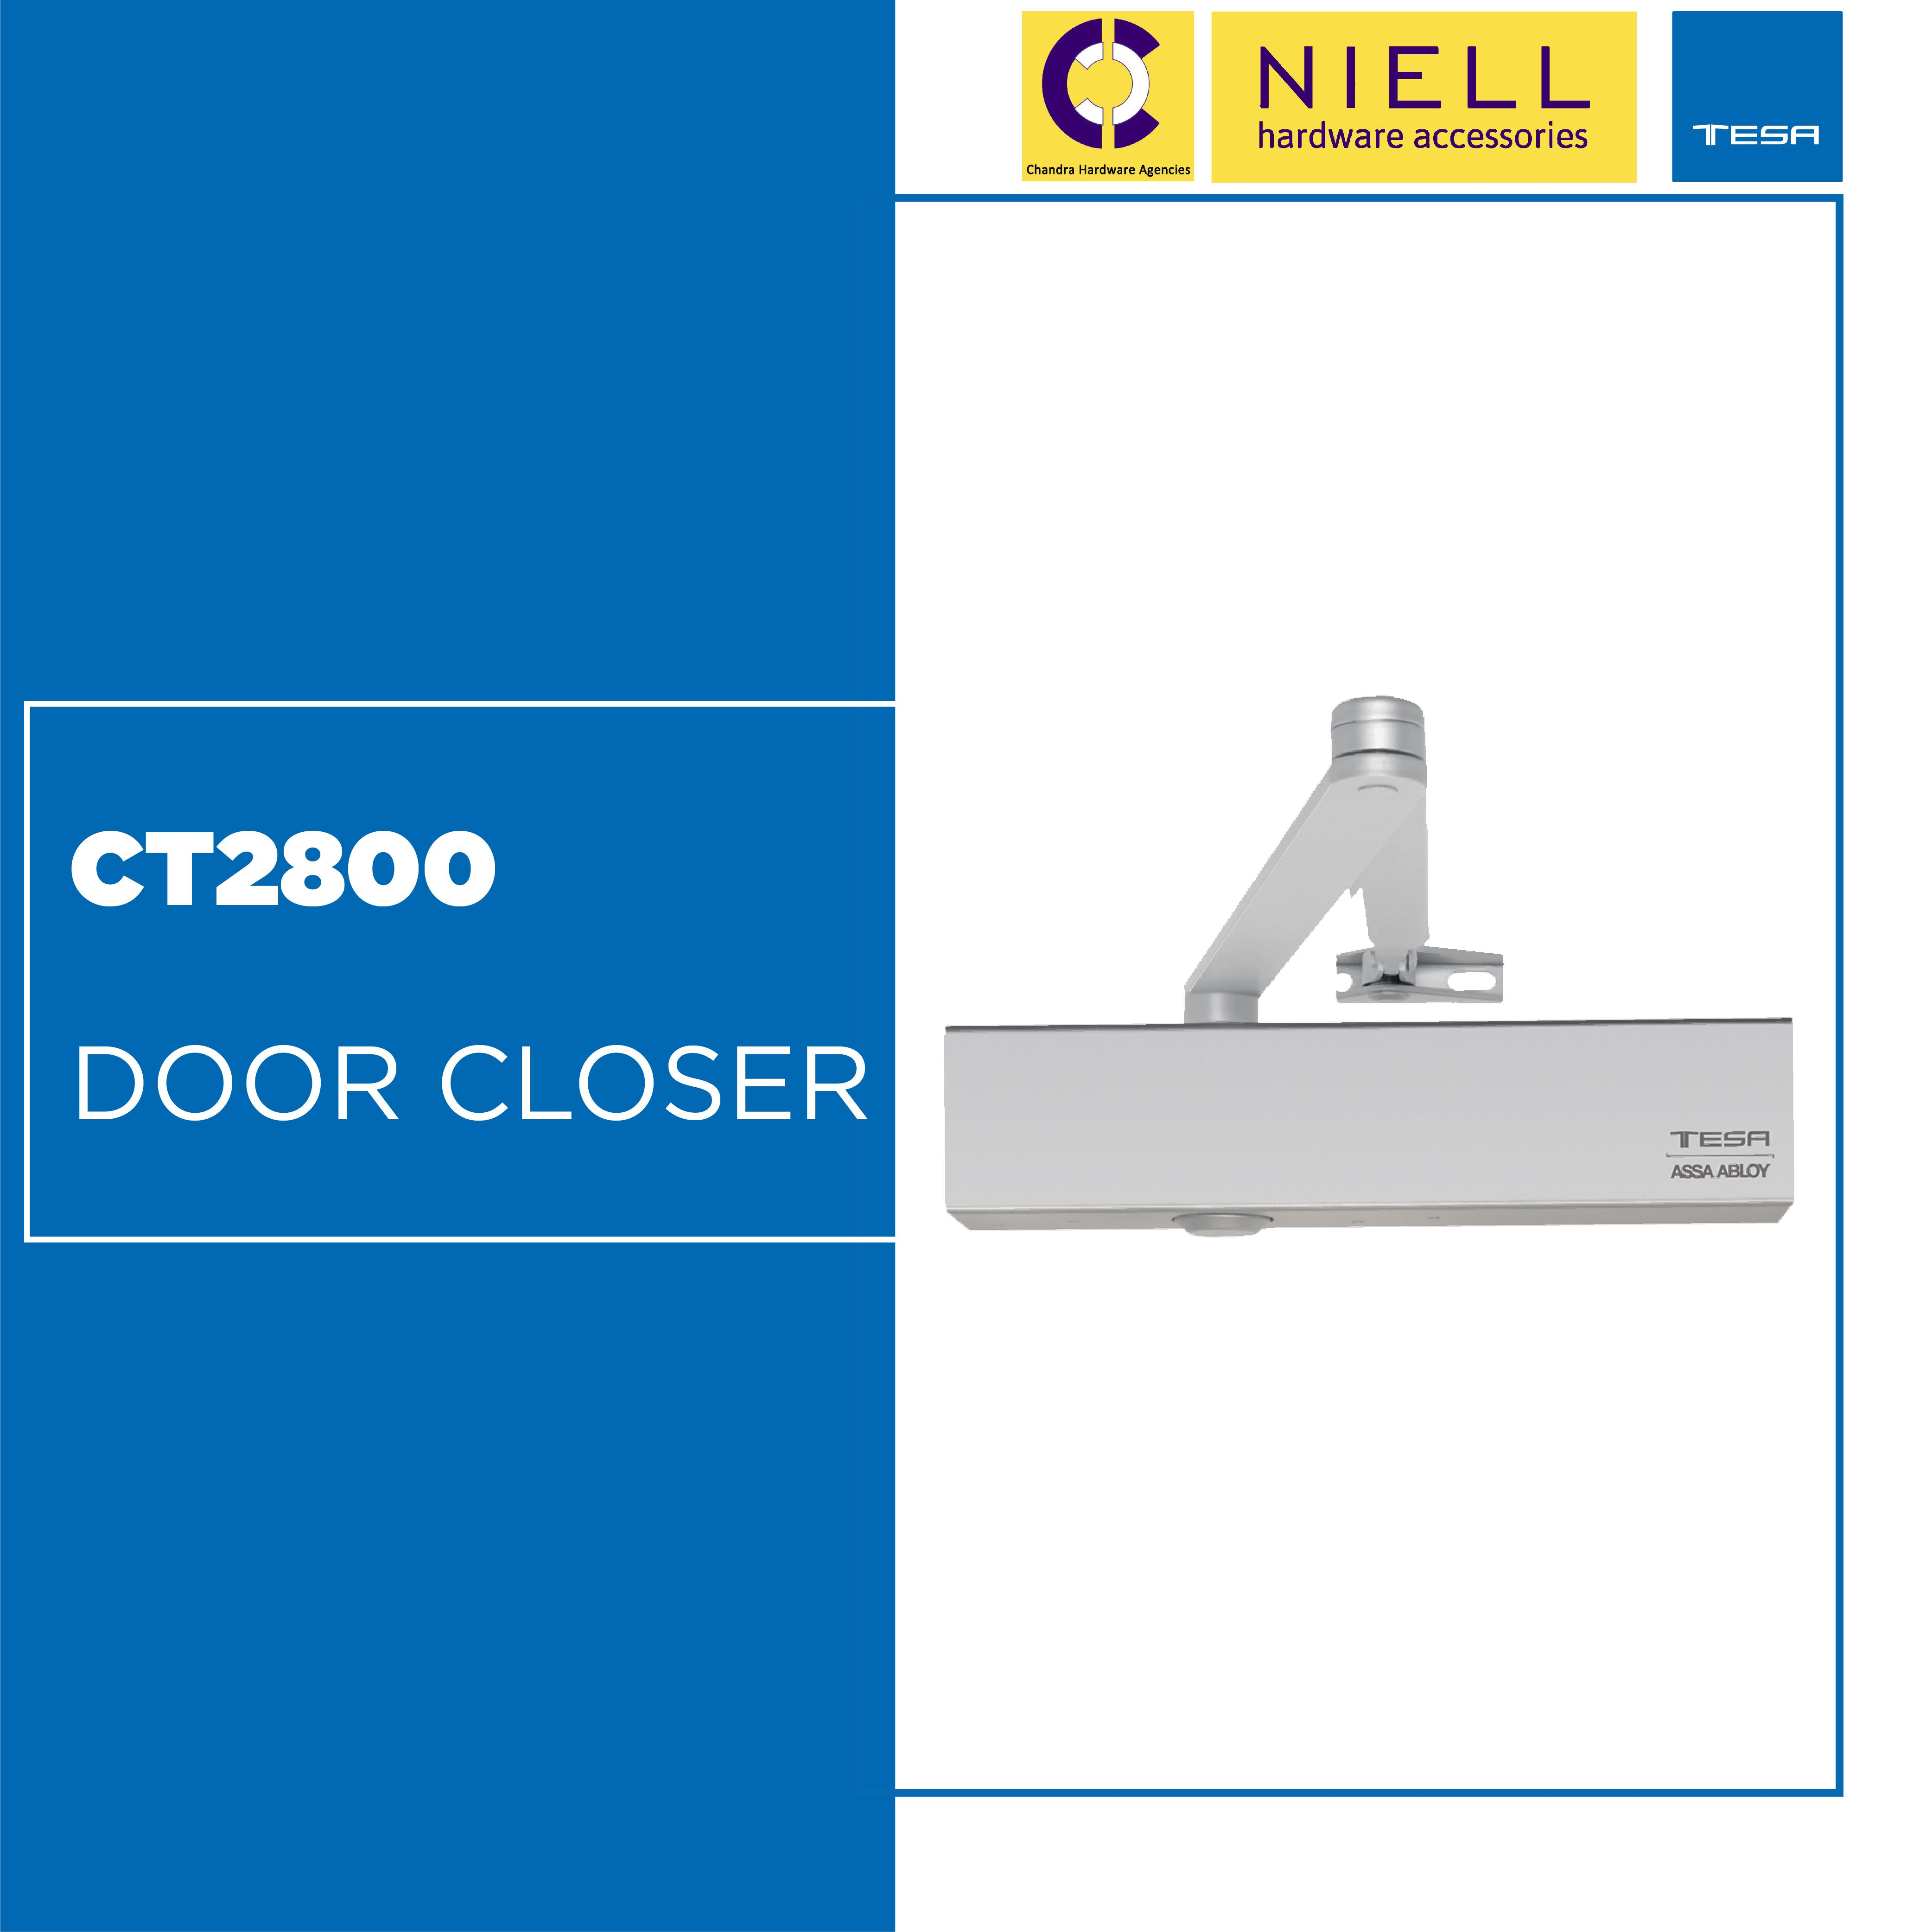 The Range Of Door Closers From Tesa Assa Abloy Contemplates Solutions For The Controlled Closure Of Any Type Of Door Whether Types Of Doors Door Closers Doors